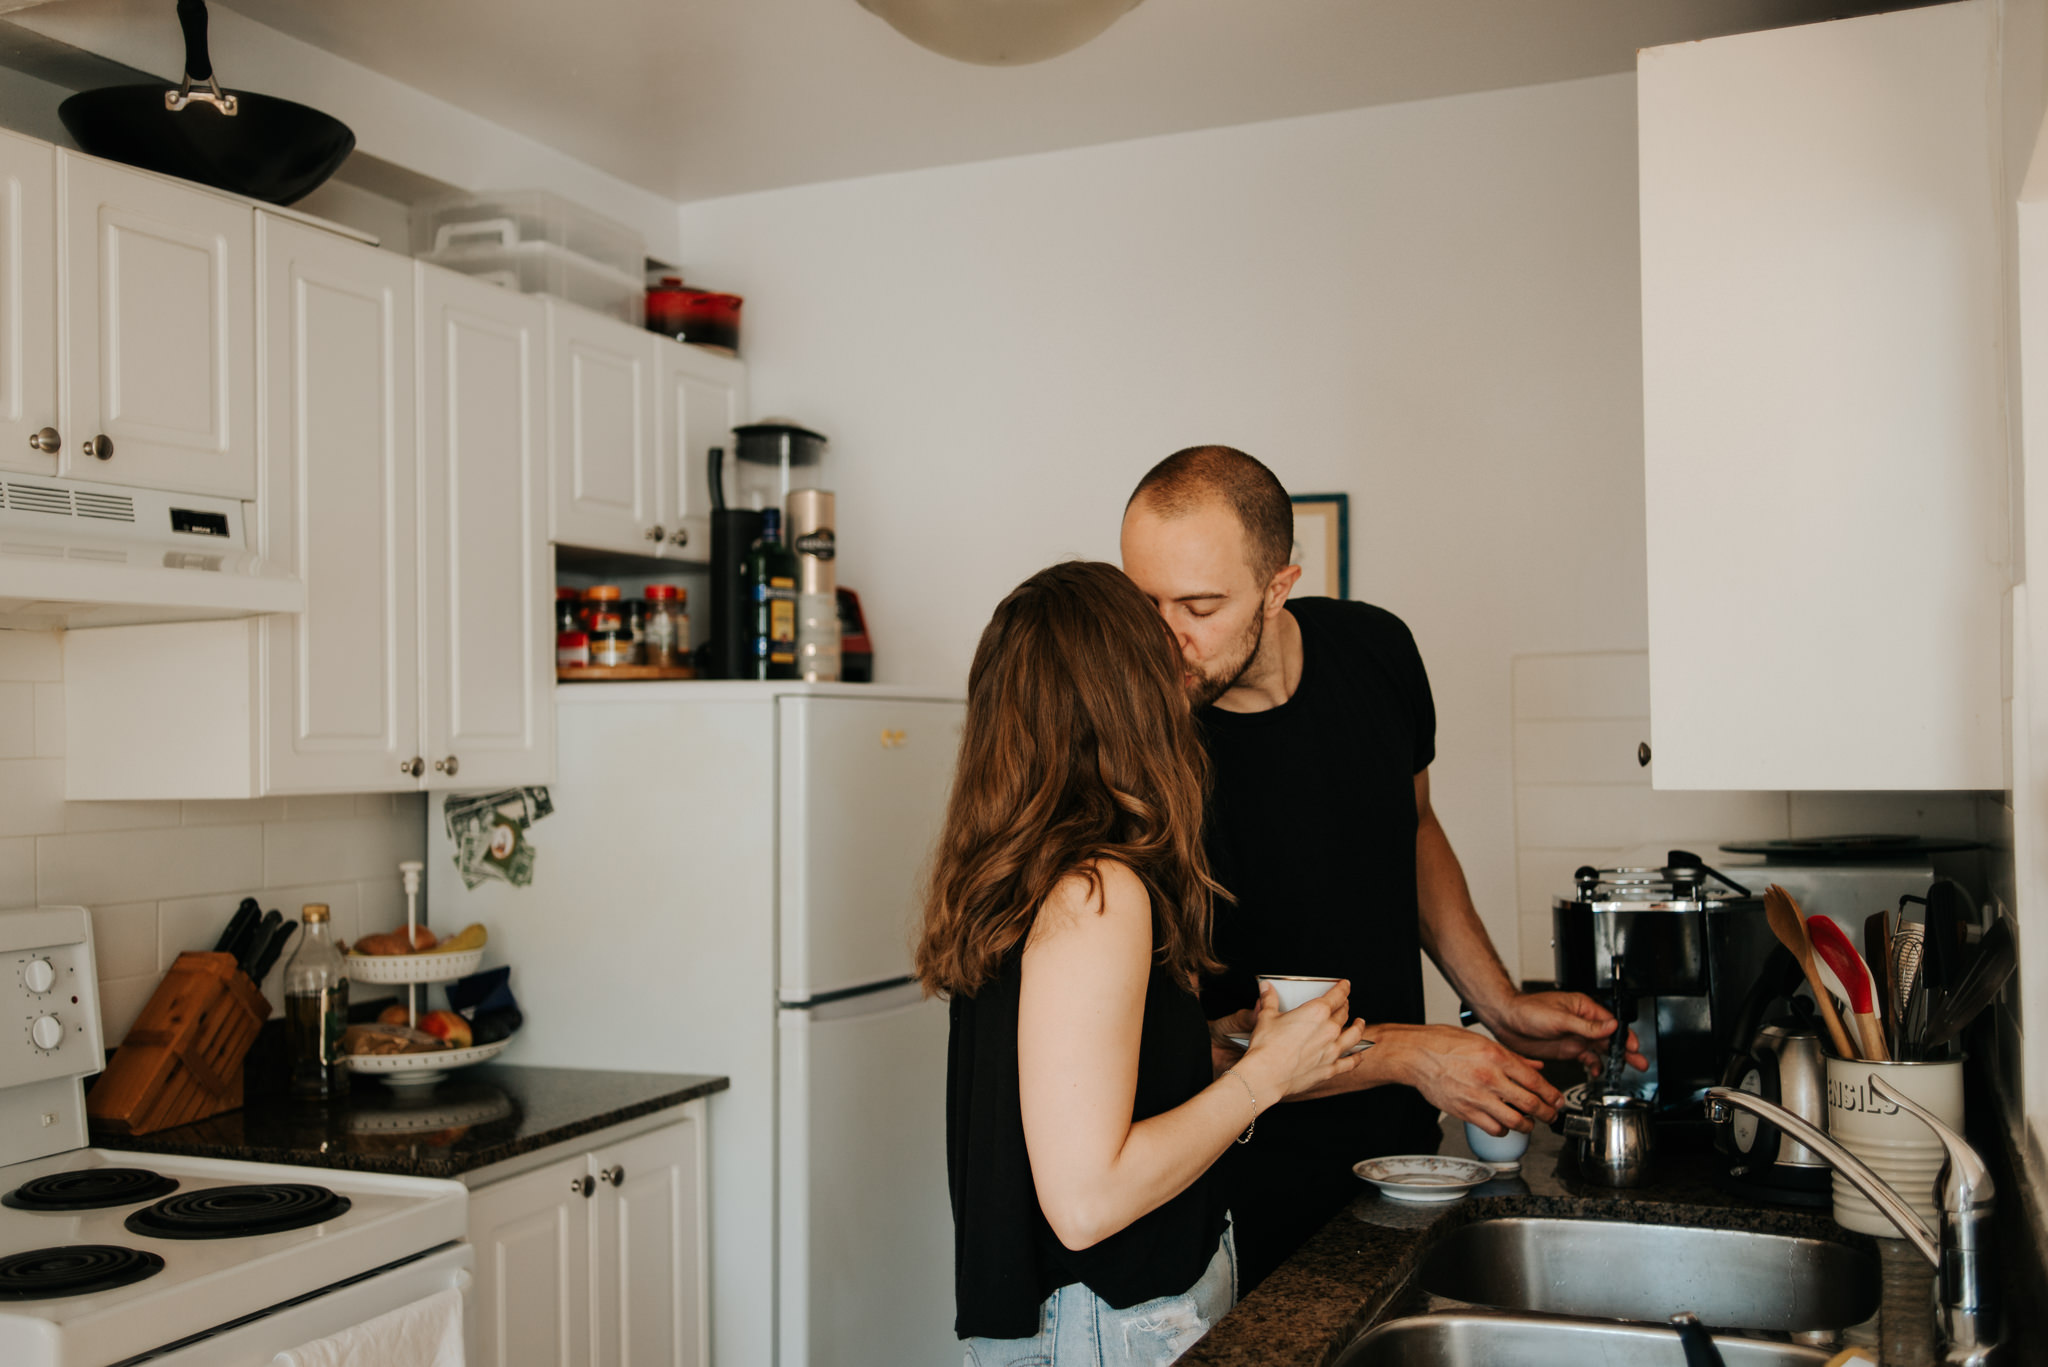 Couple kissing in apartment kitchen